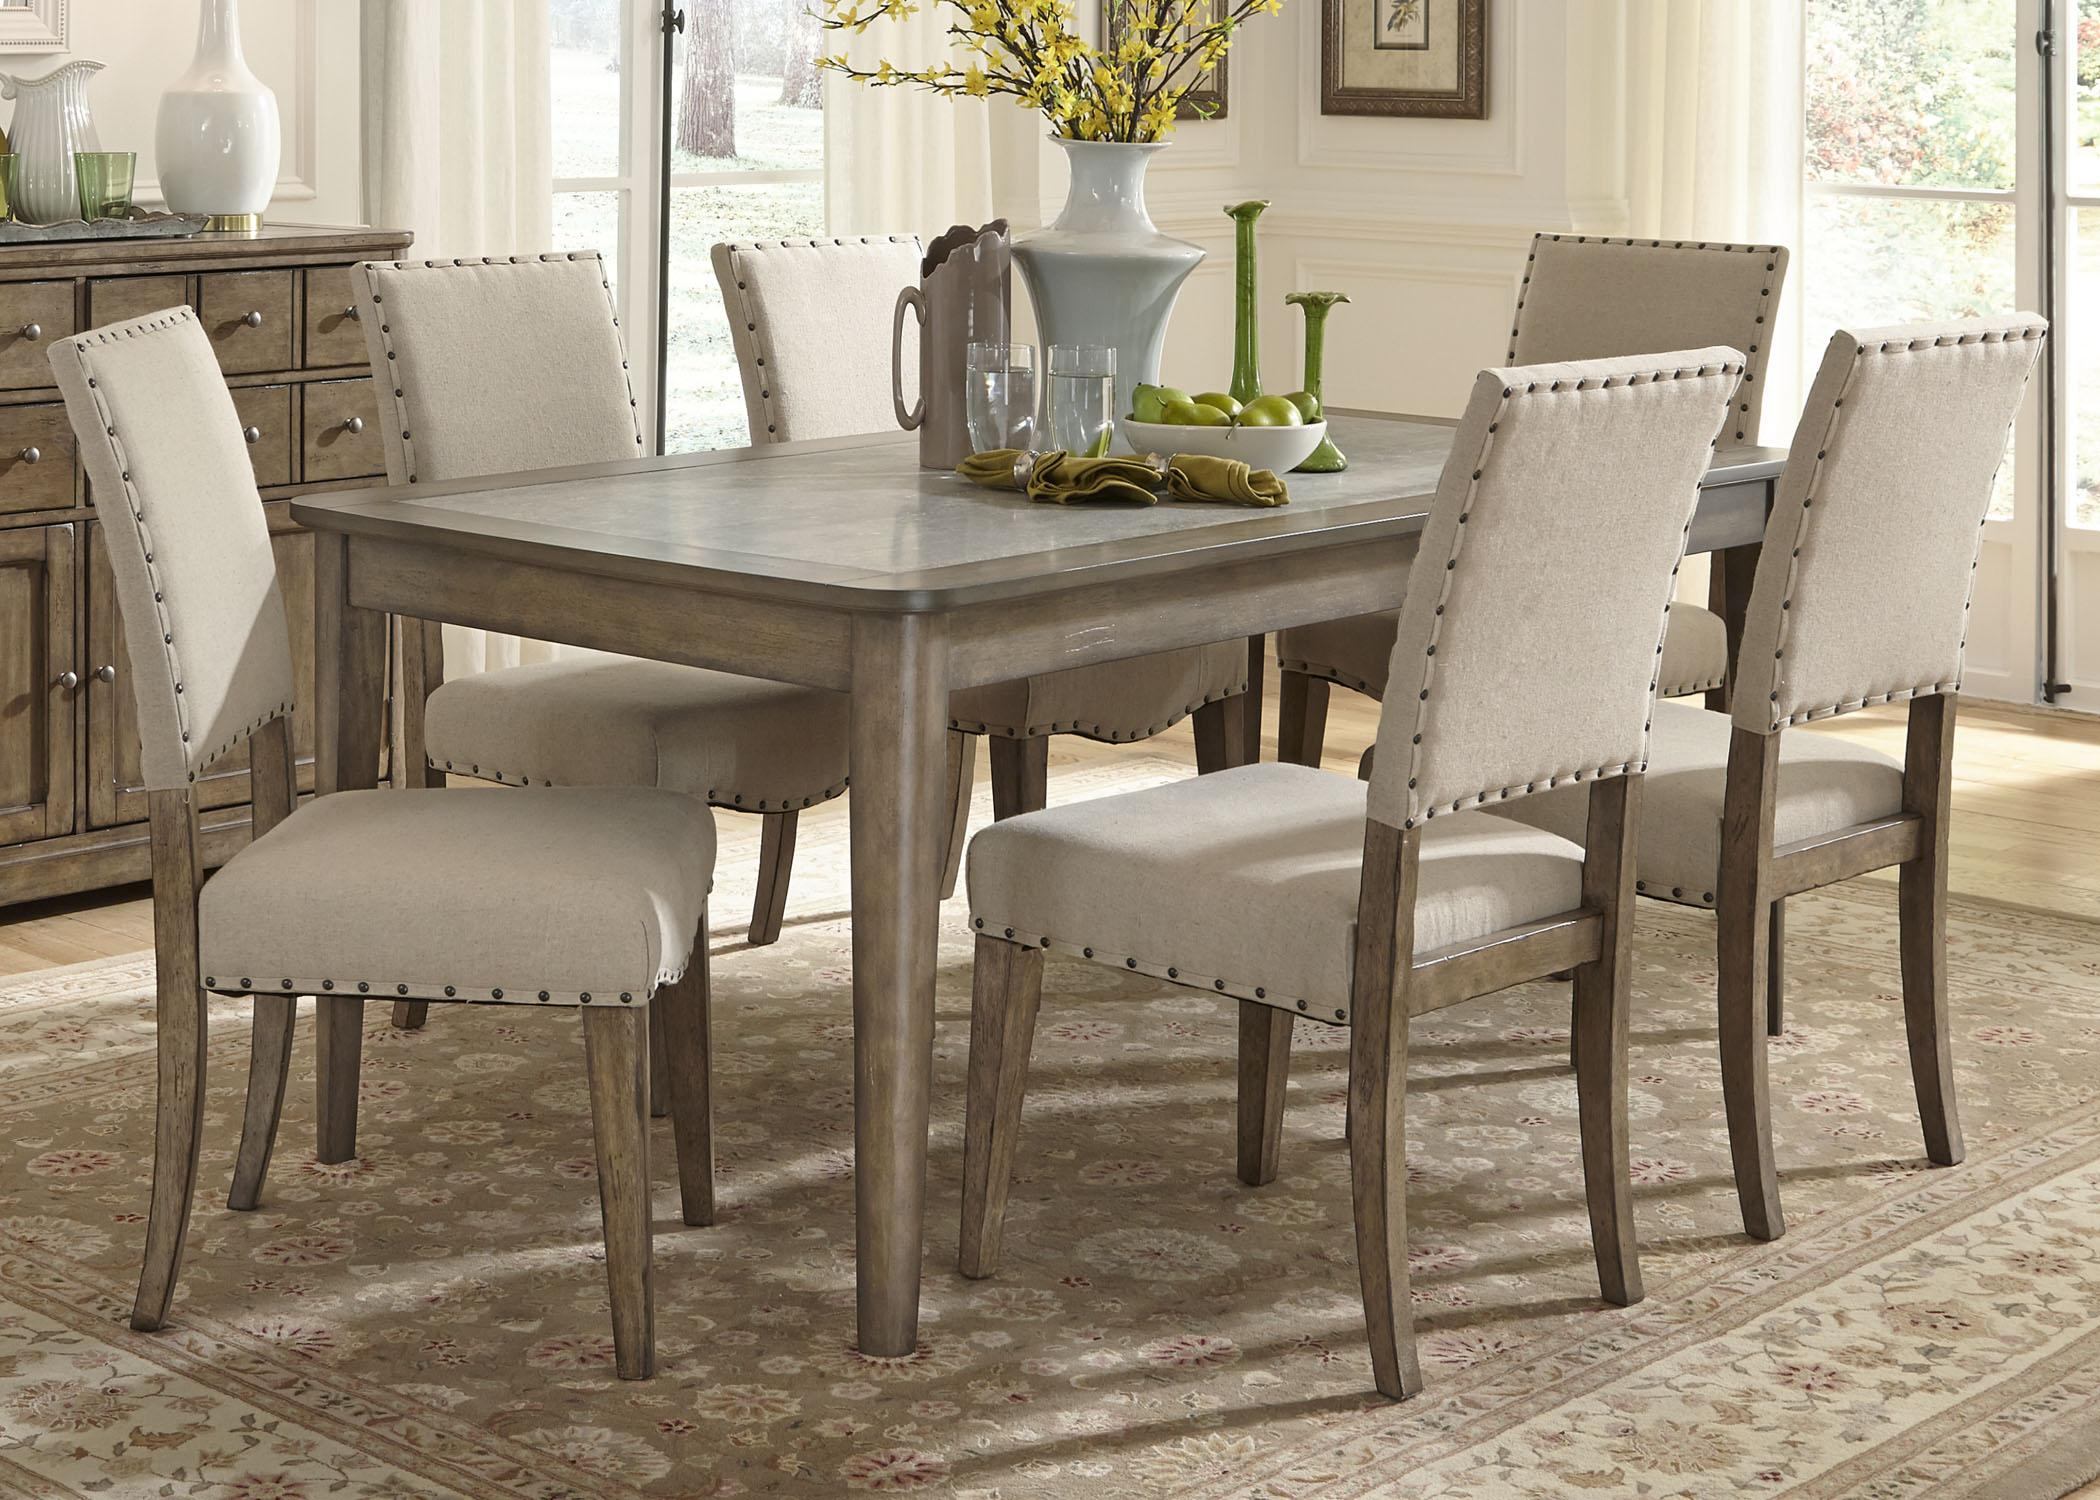 dining room table set. Casual Rustic 7 Piece Dining Table And Chairs Set By Liberty